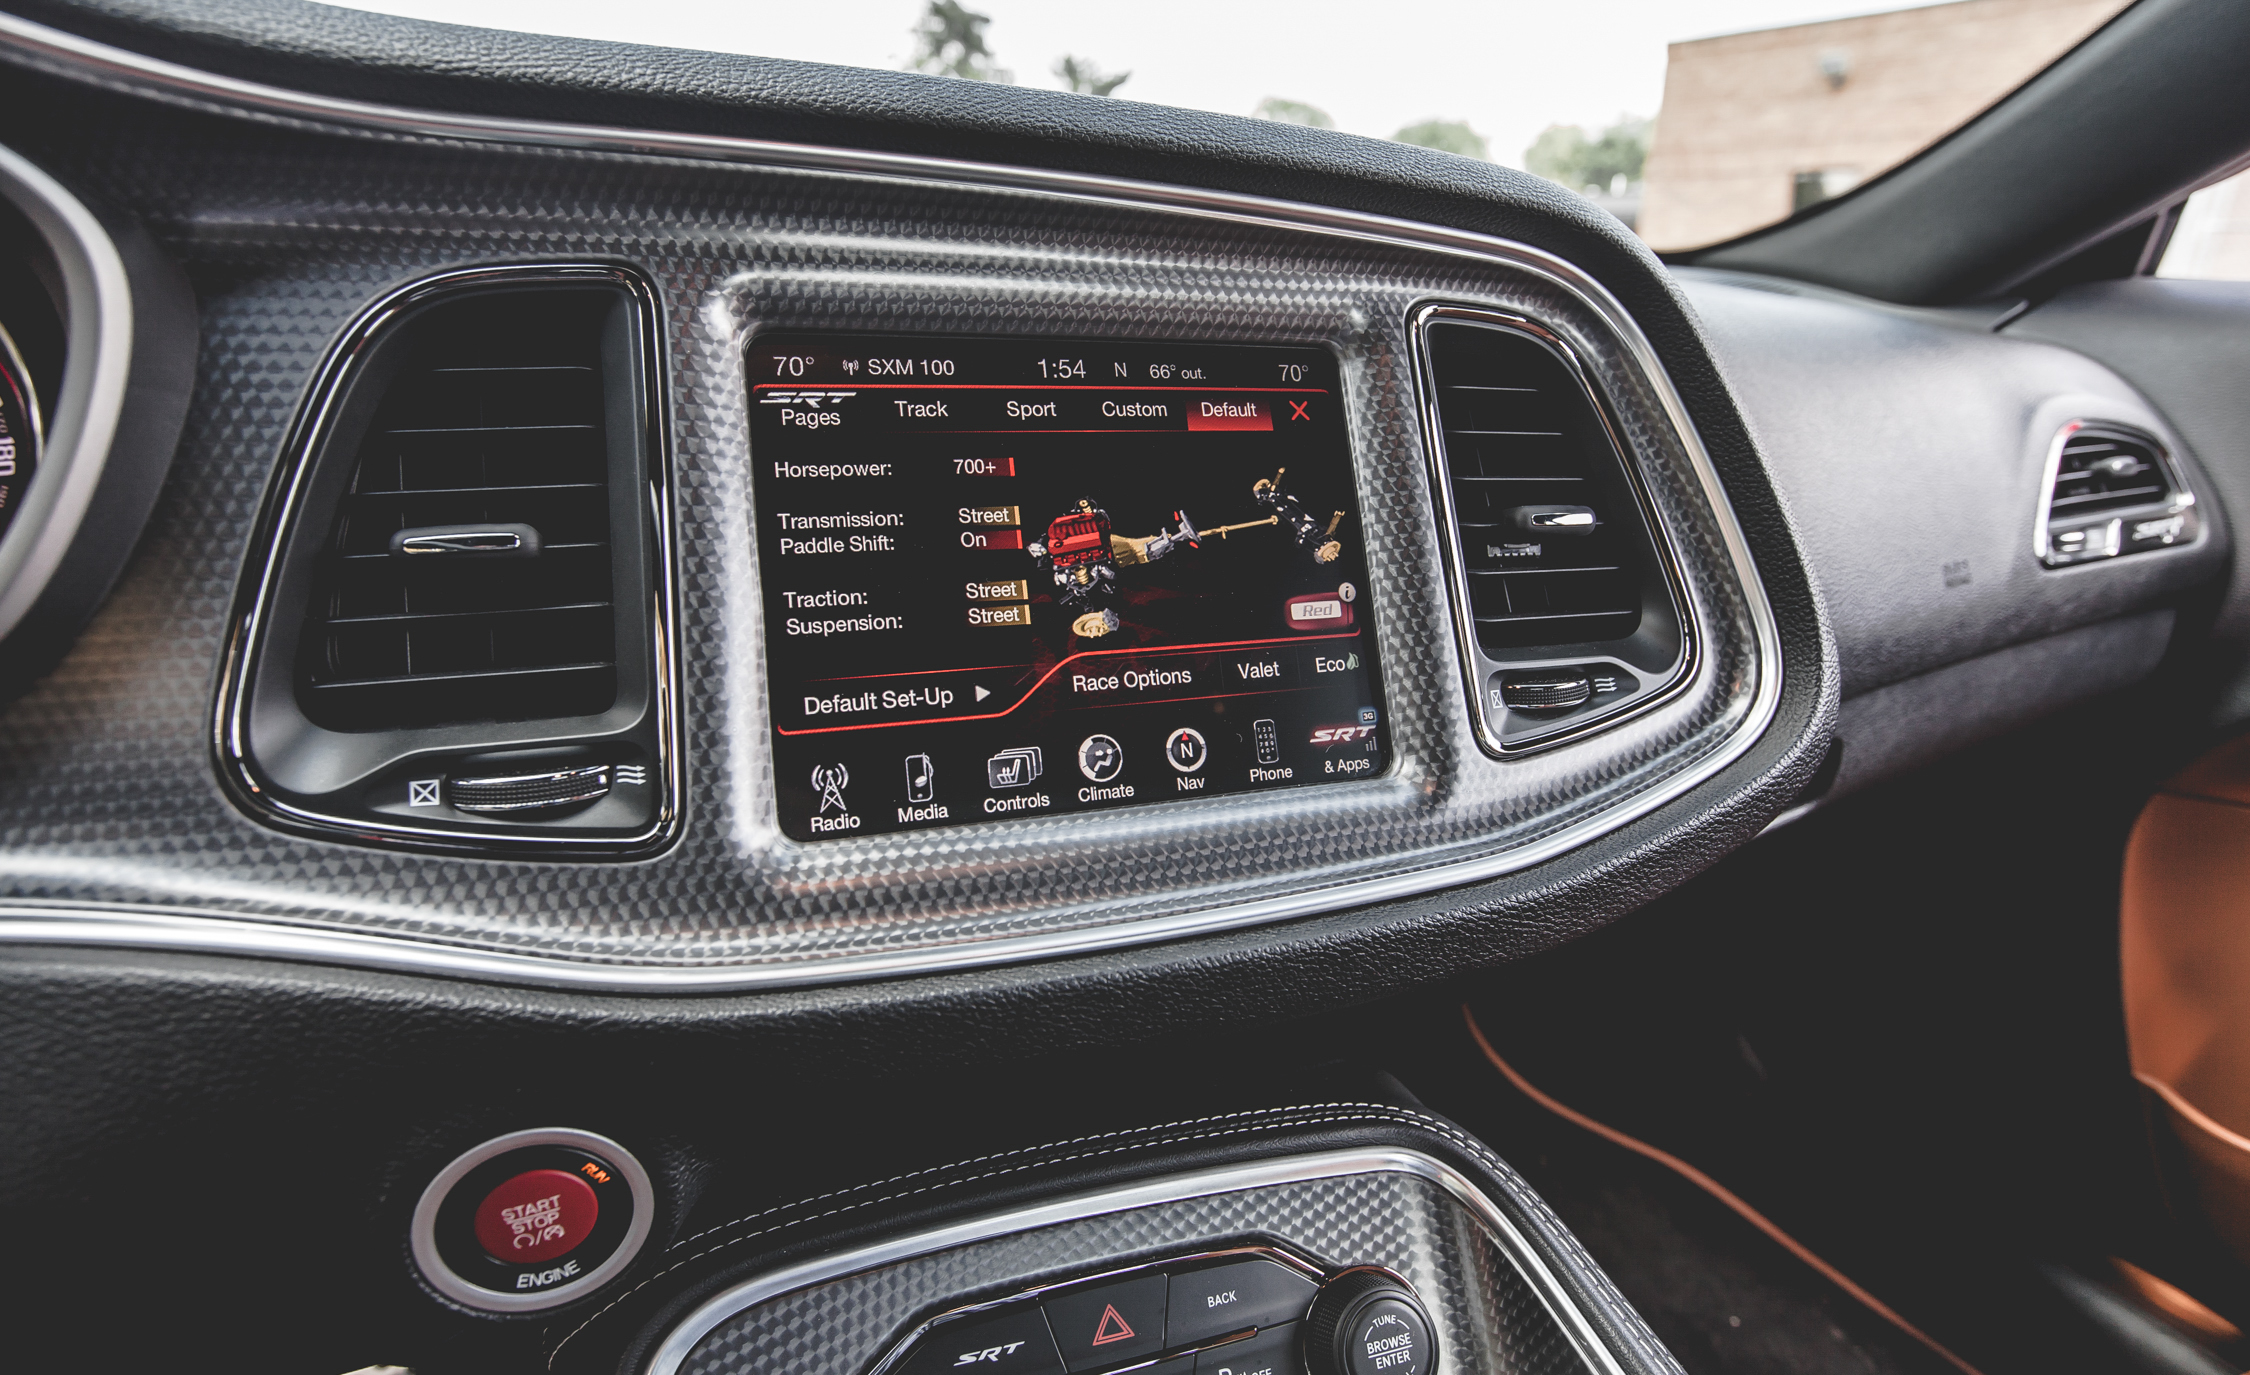 2015 Dodge Challenger Srt Hellcat Interior Center Head Unit 8857 Cars Performance Reviews